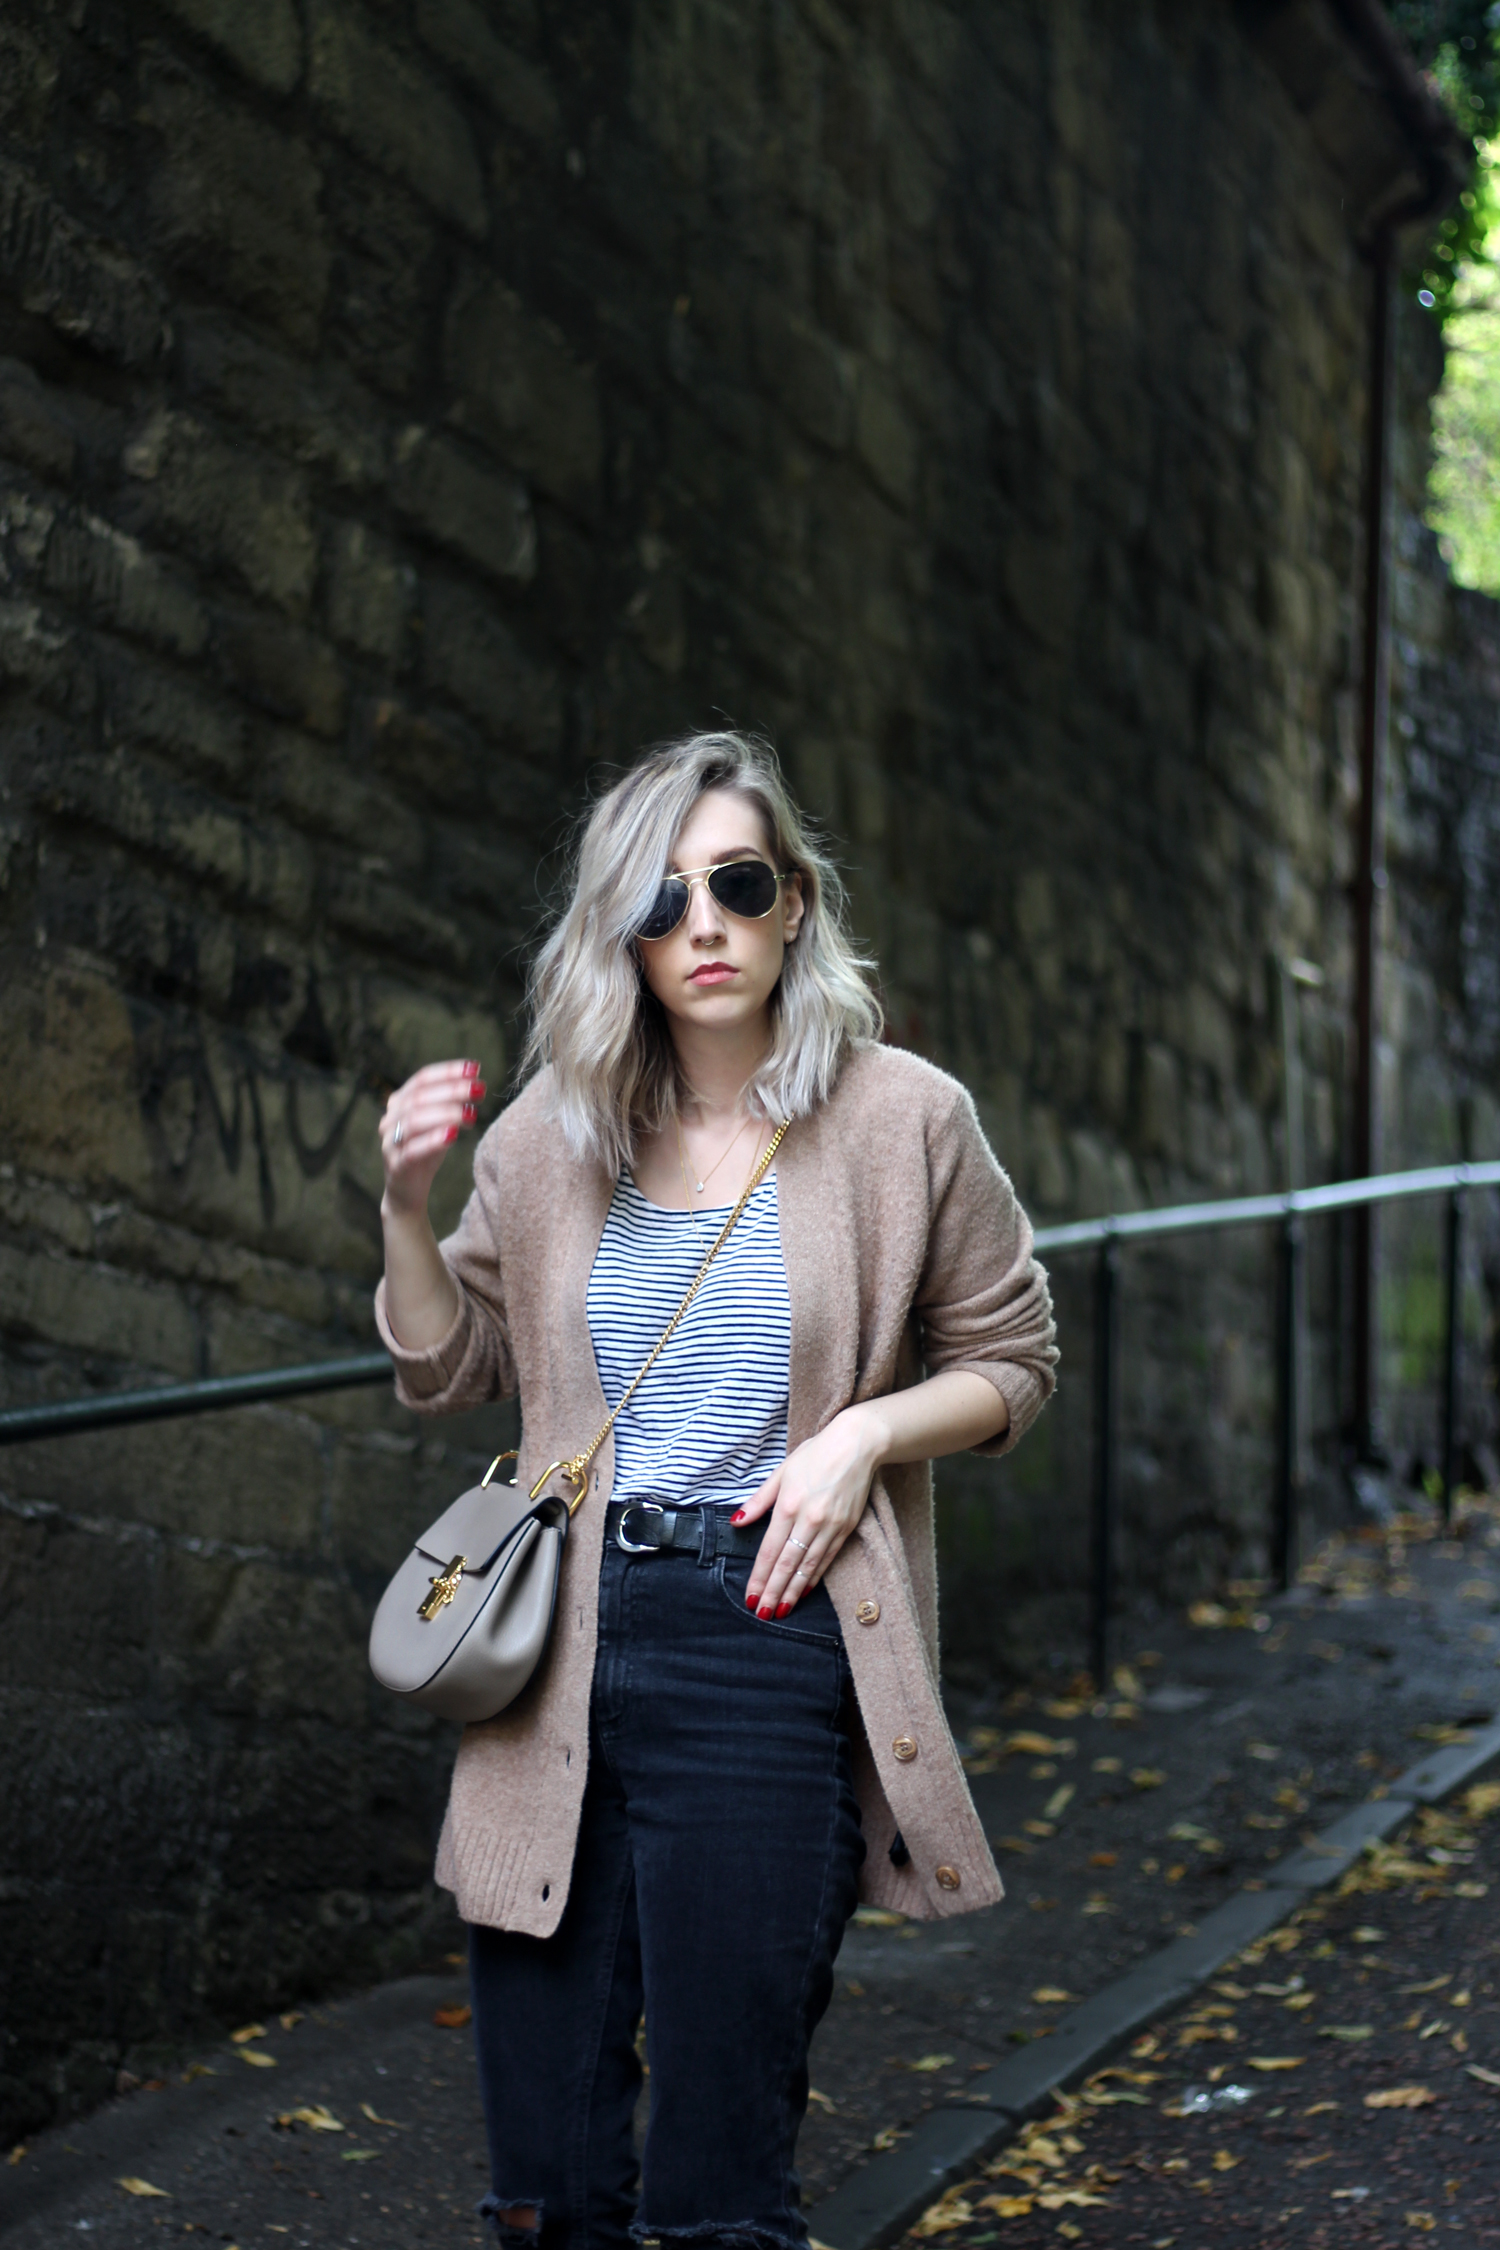 sunglasses-camel-cardigan-asos-ripped-boyfriend-jeans